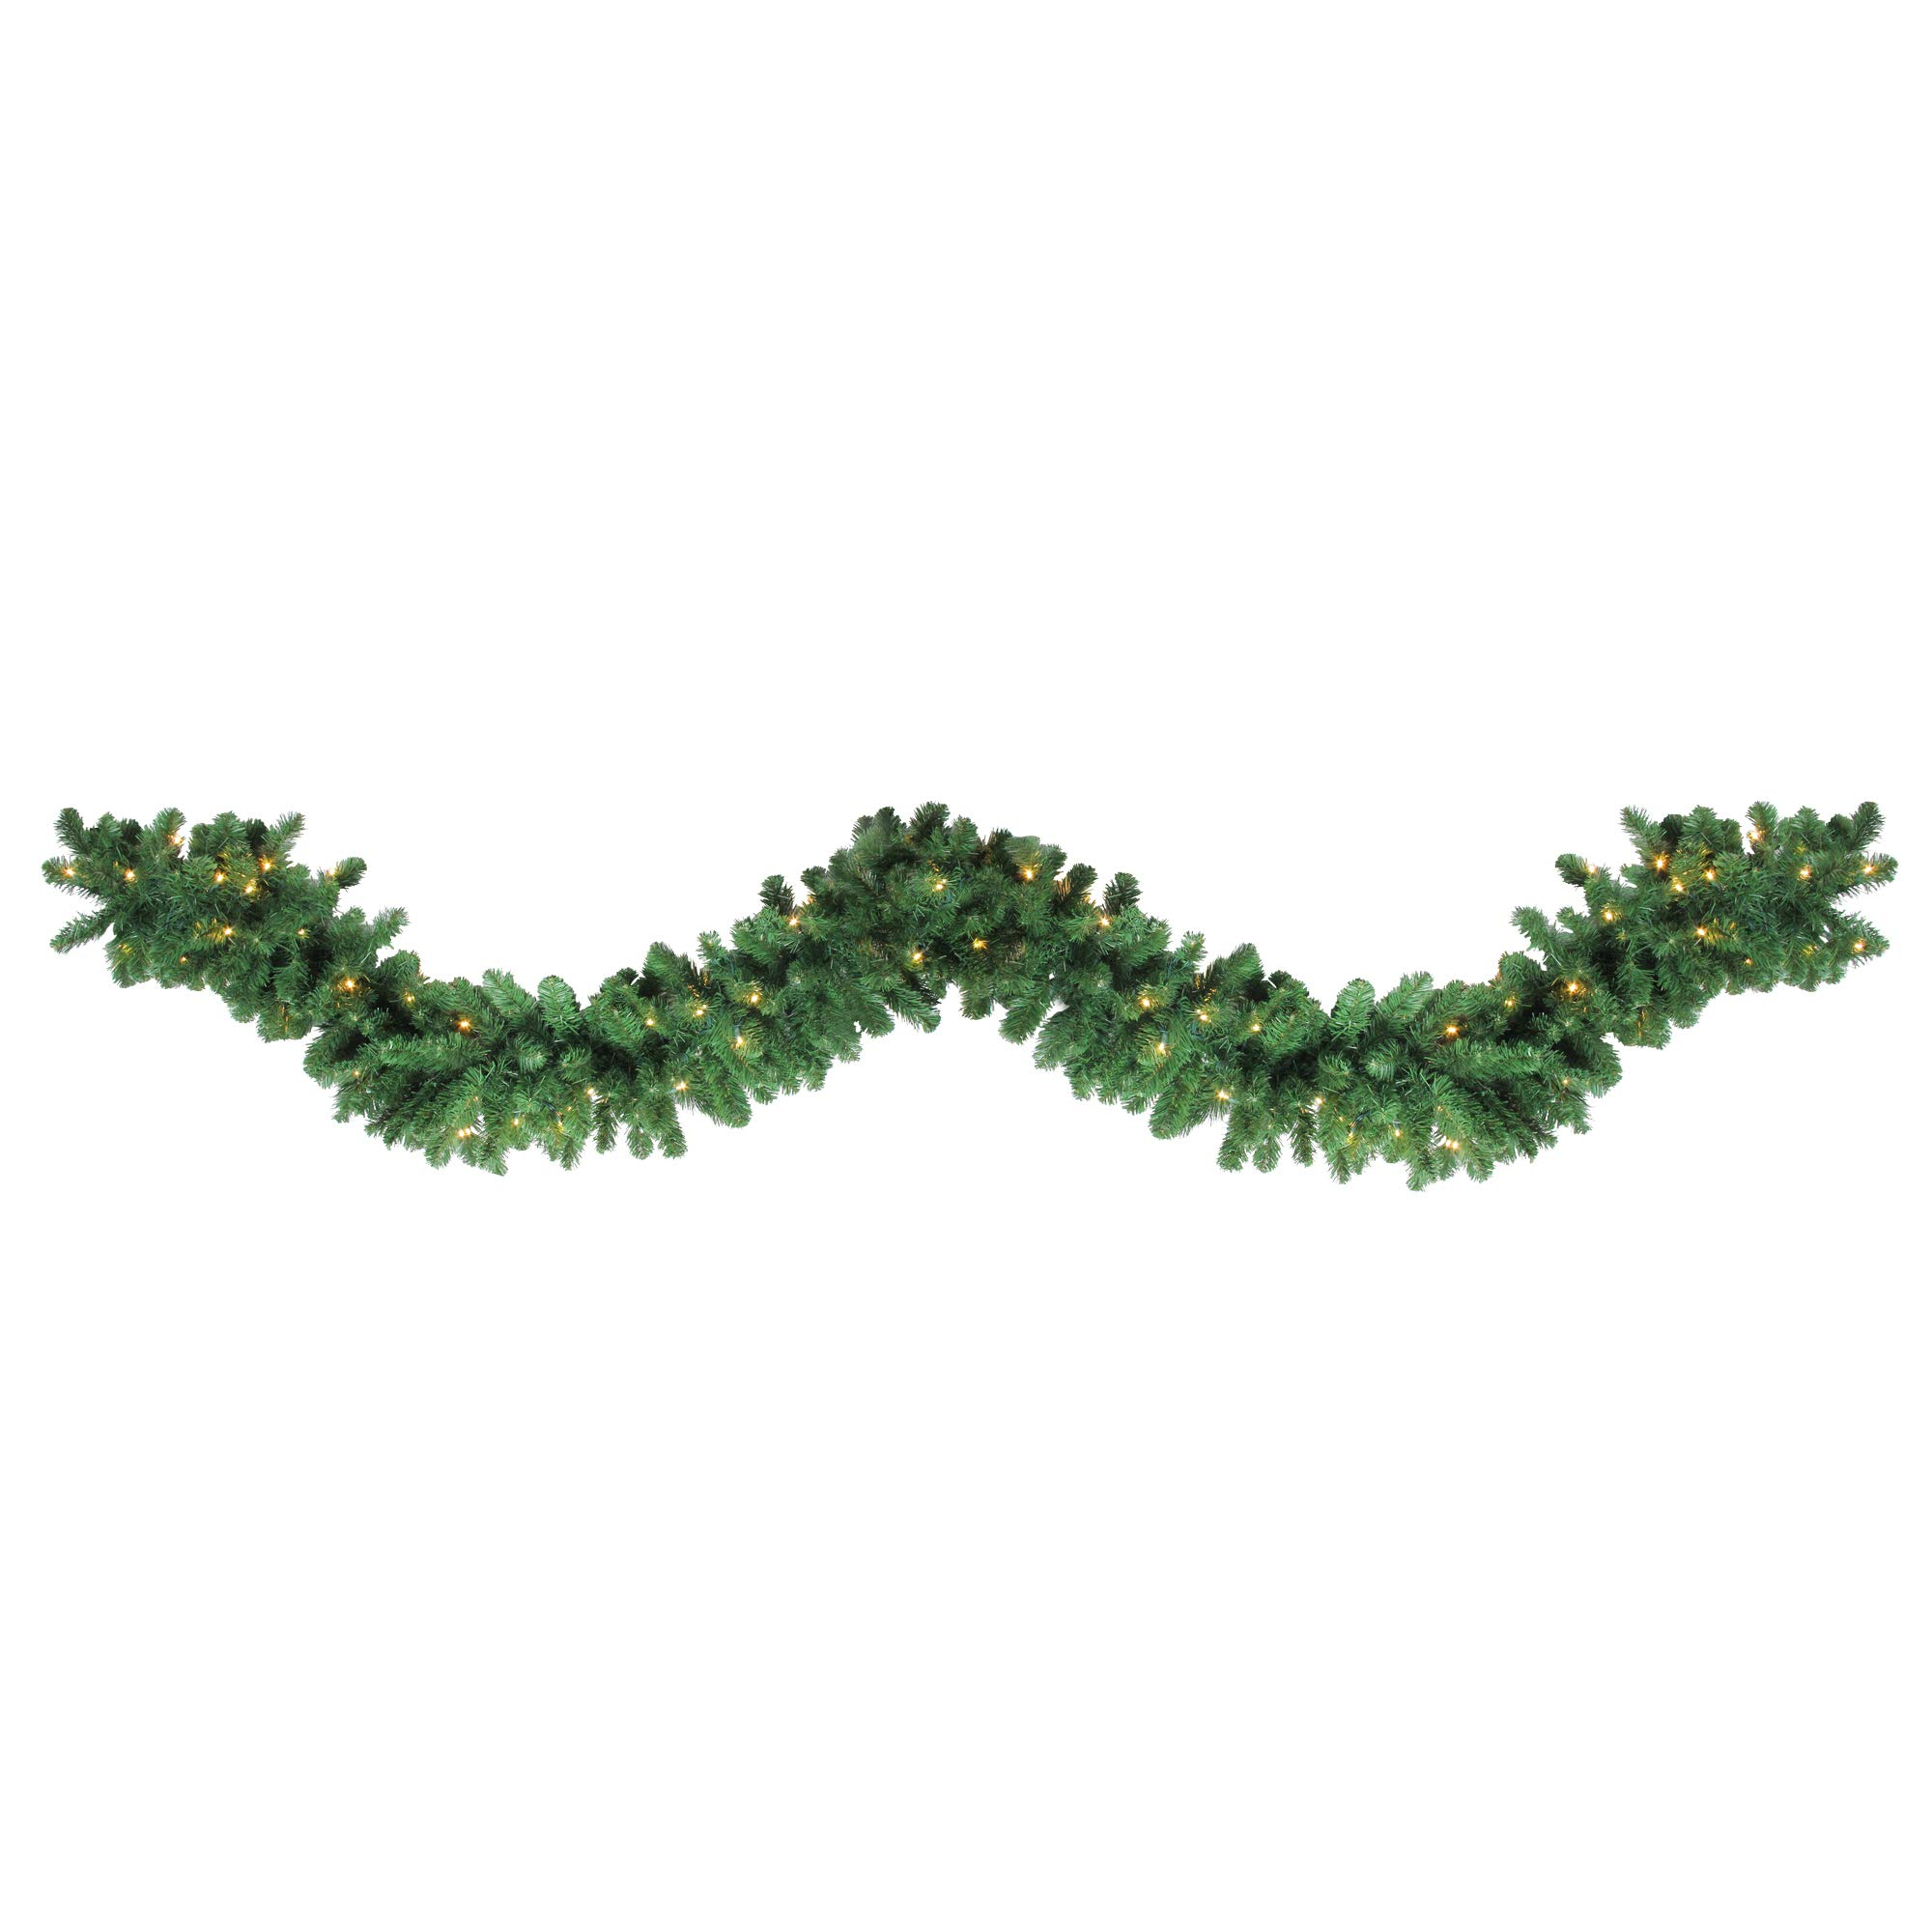 Northlight 27' x 14'' Pre-Lit Olympia Pine Artificial Christmas Garland - Warm White LED Lights